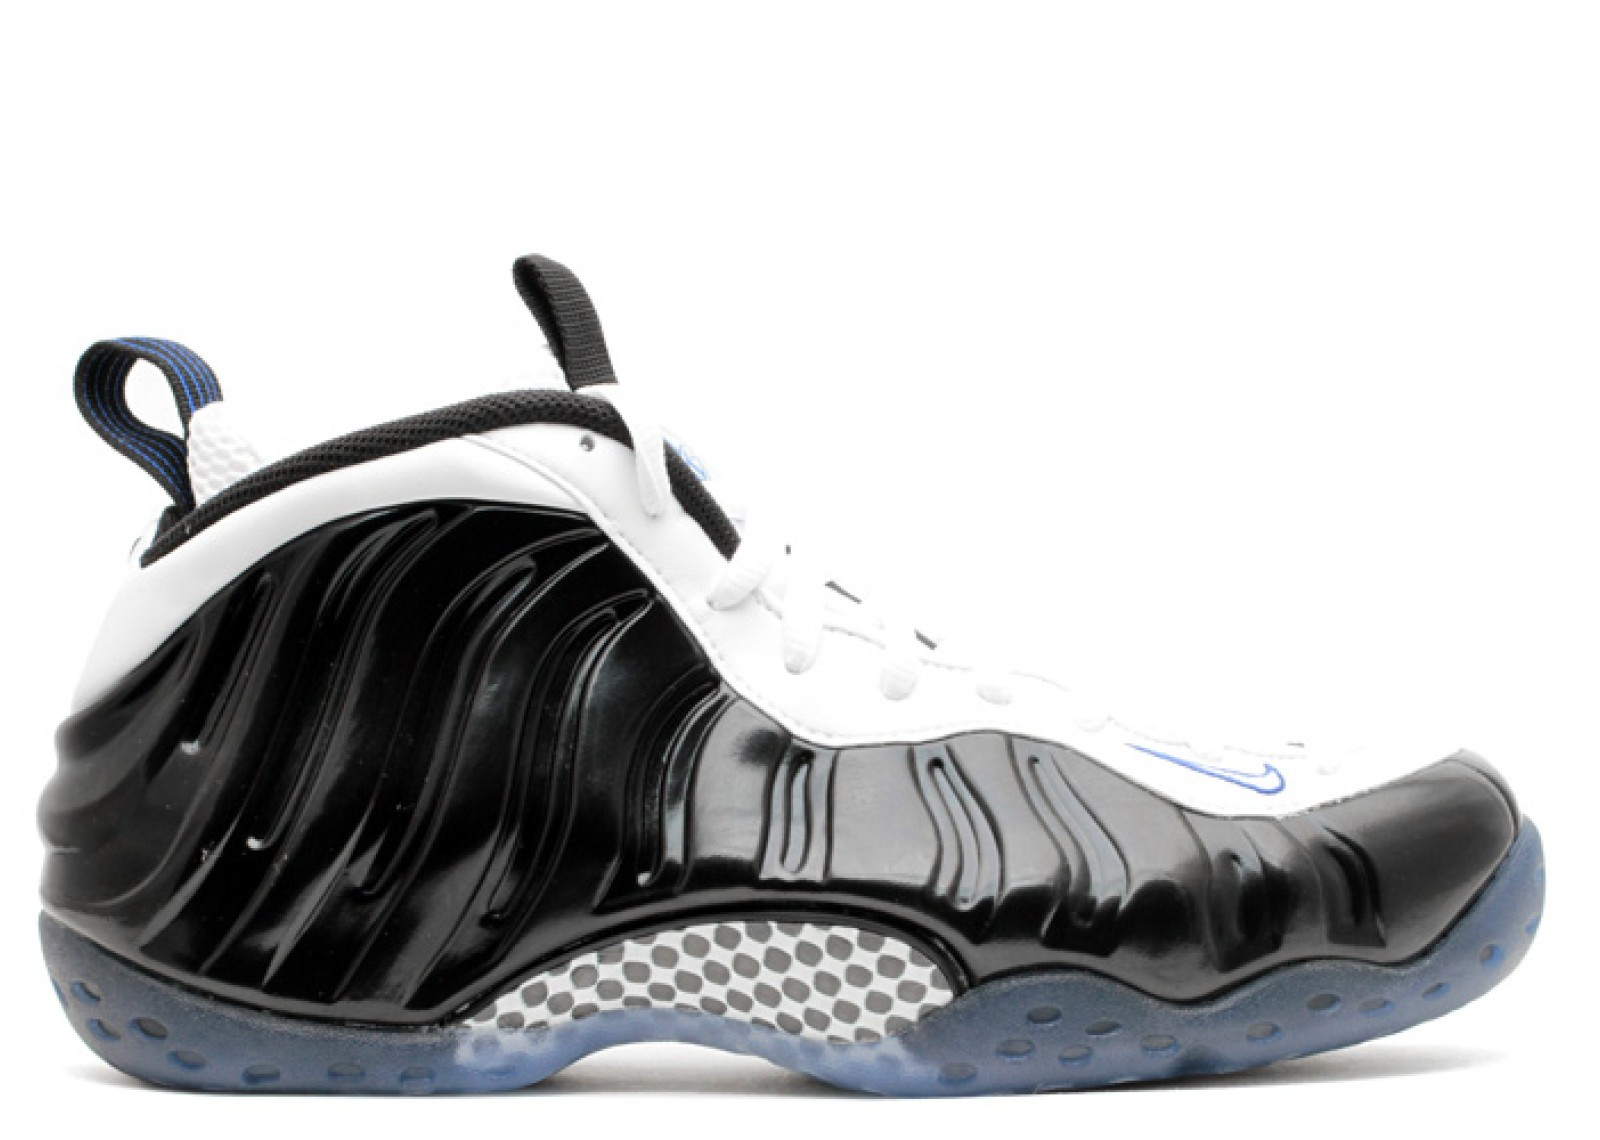 cheap for discount 5d778 0544c Prev Air Foamposite One Concord Royal White Black Game 314996-005